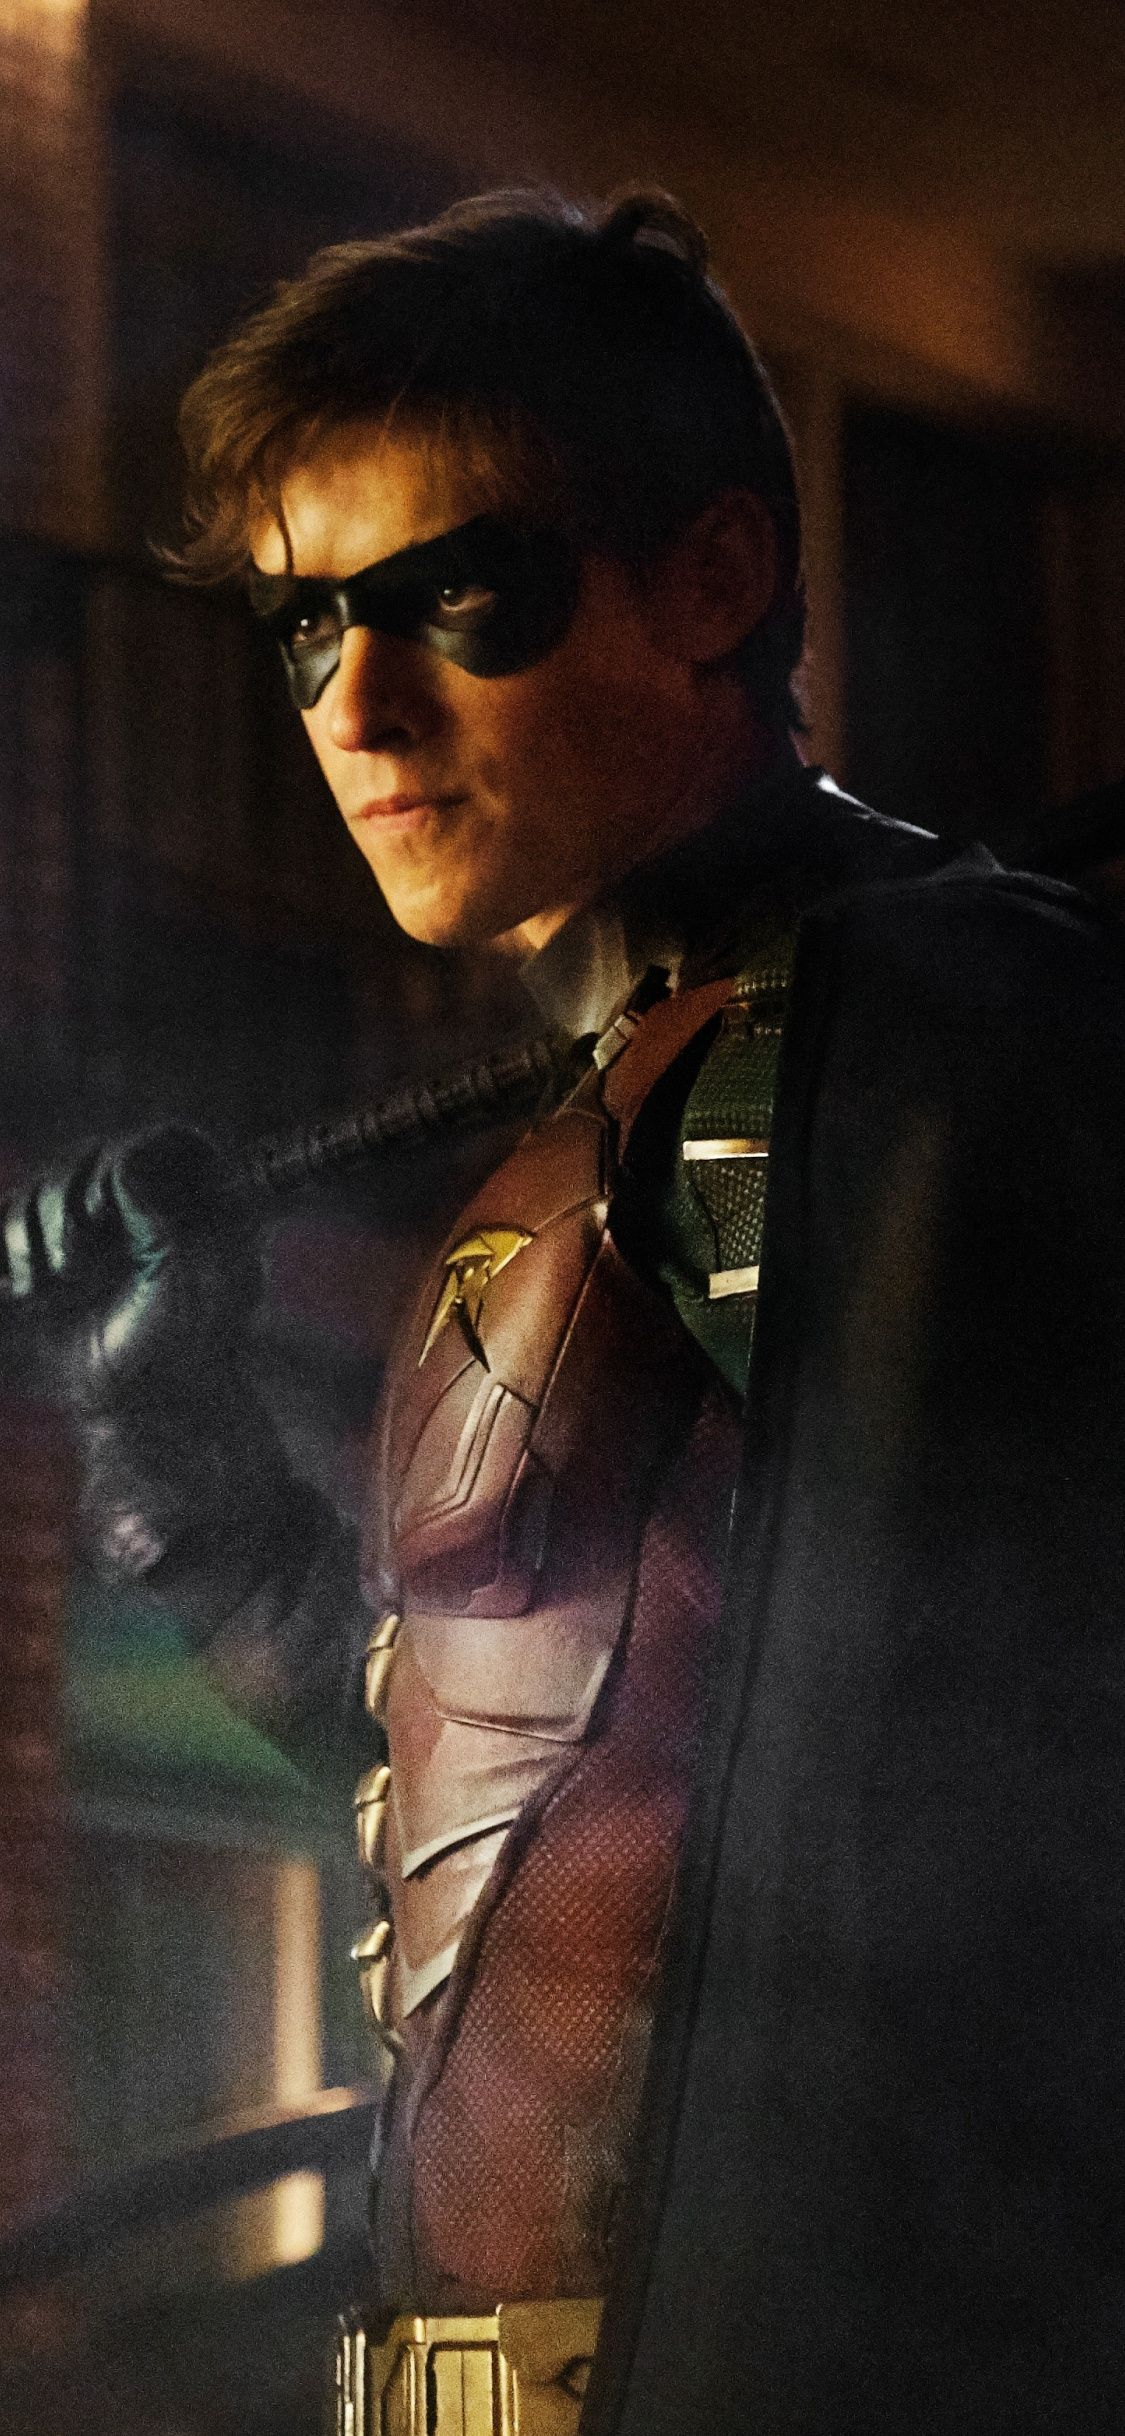 1125x2436 Download 1125x2436 wallpaper robin, titans, tv series ...